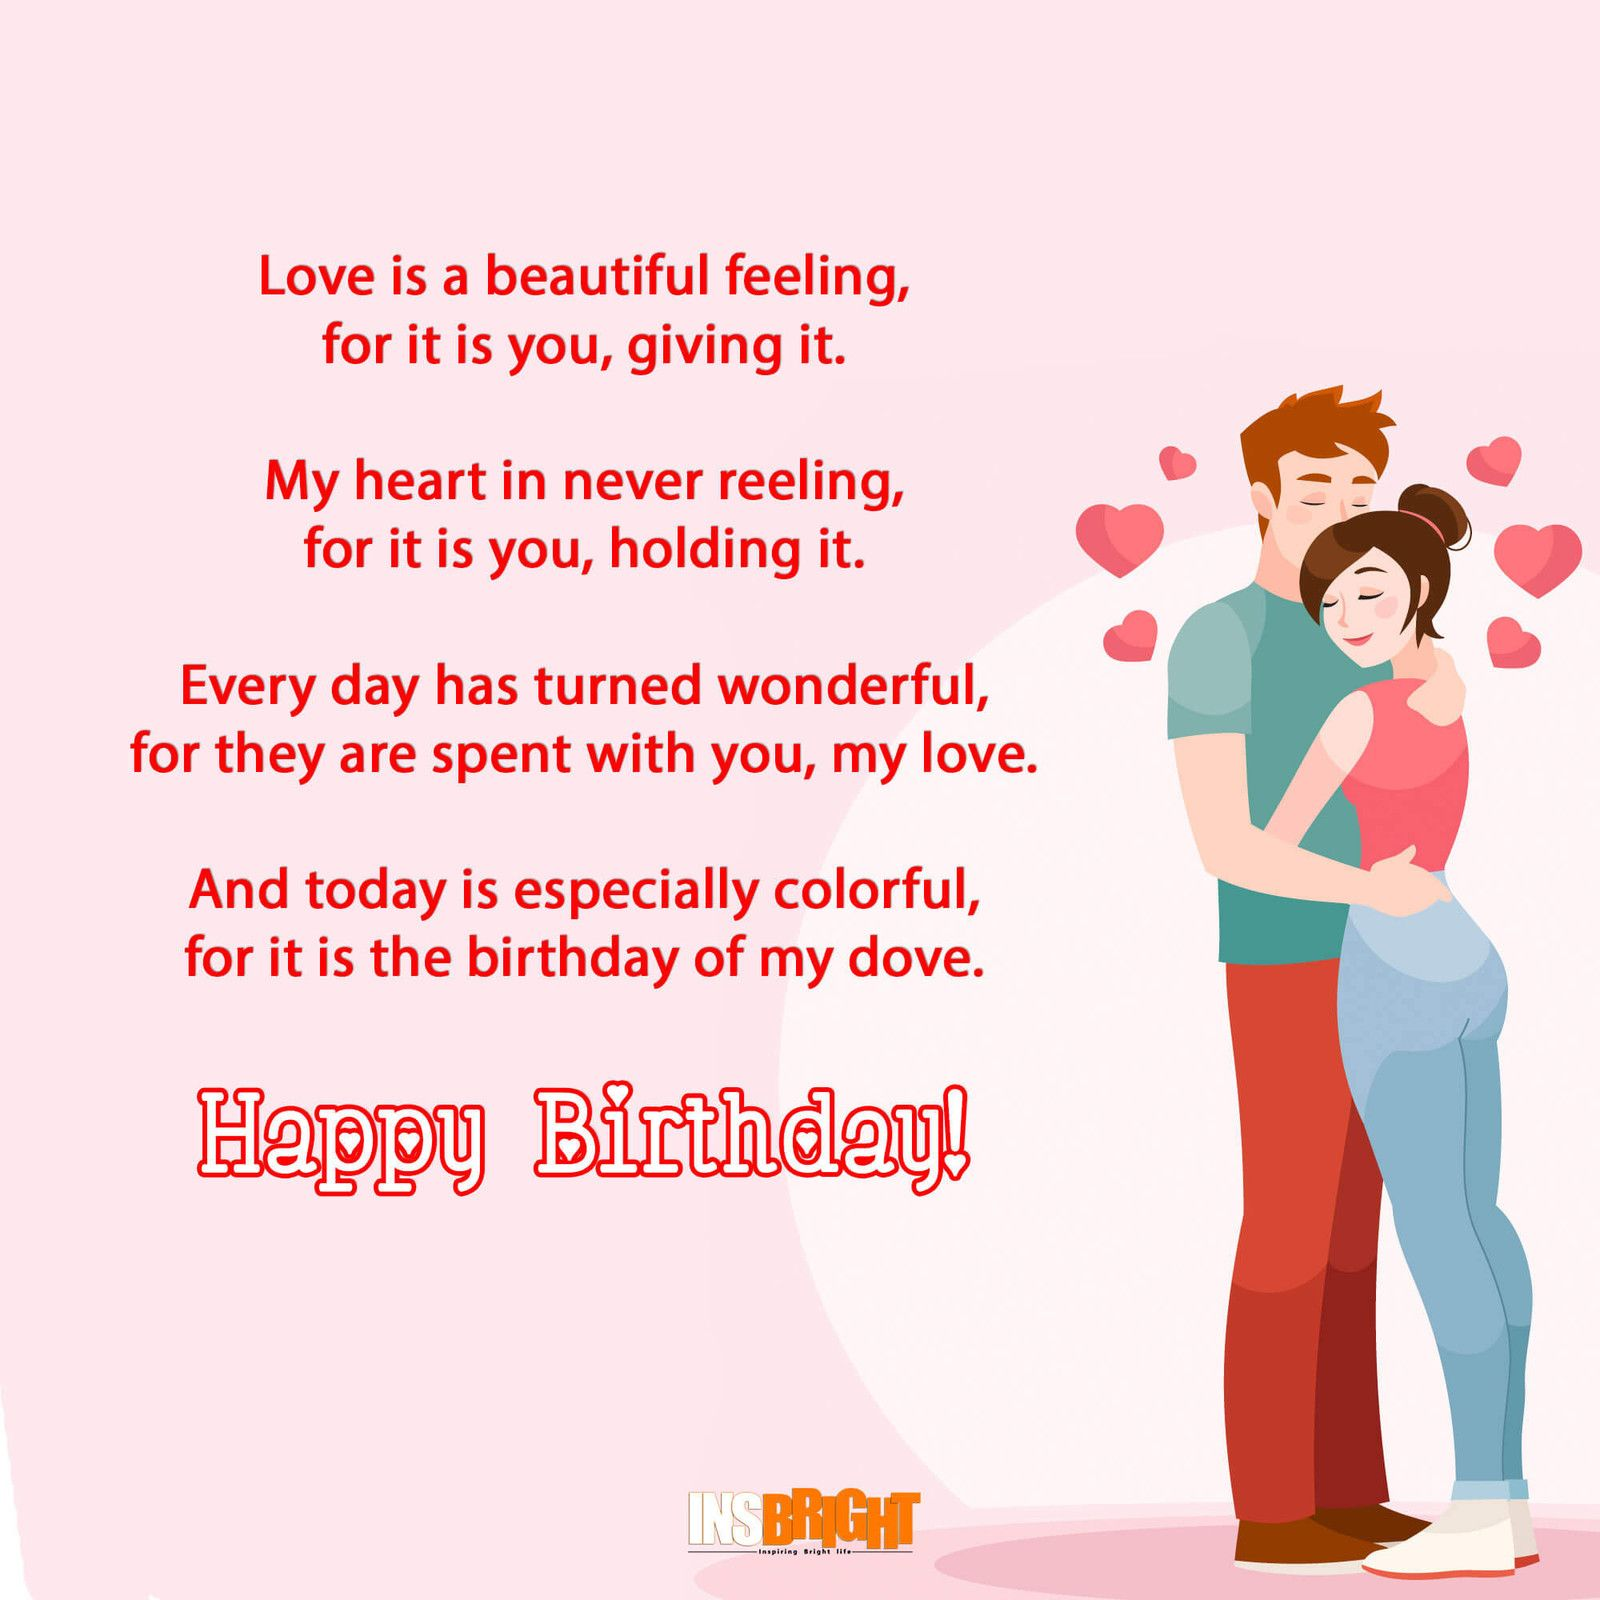 10 Romantic Happy Birthday Poems For Wife With Love From Wife Birthday Quotes Birthday Wish For Husband Birthday Poems